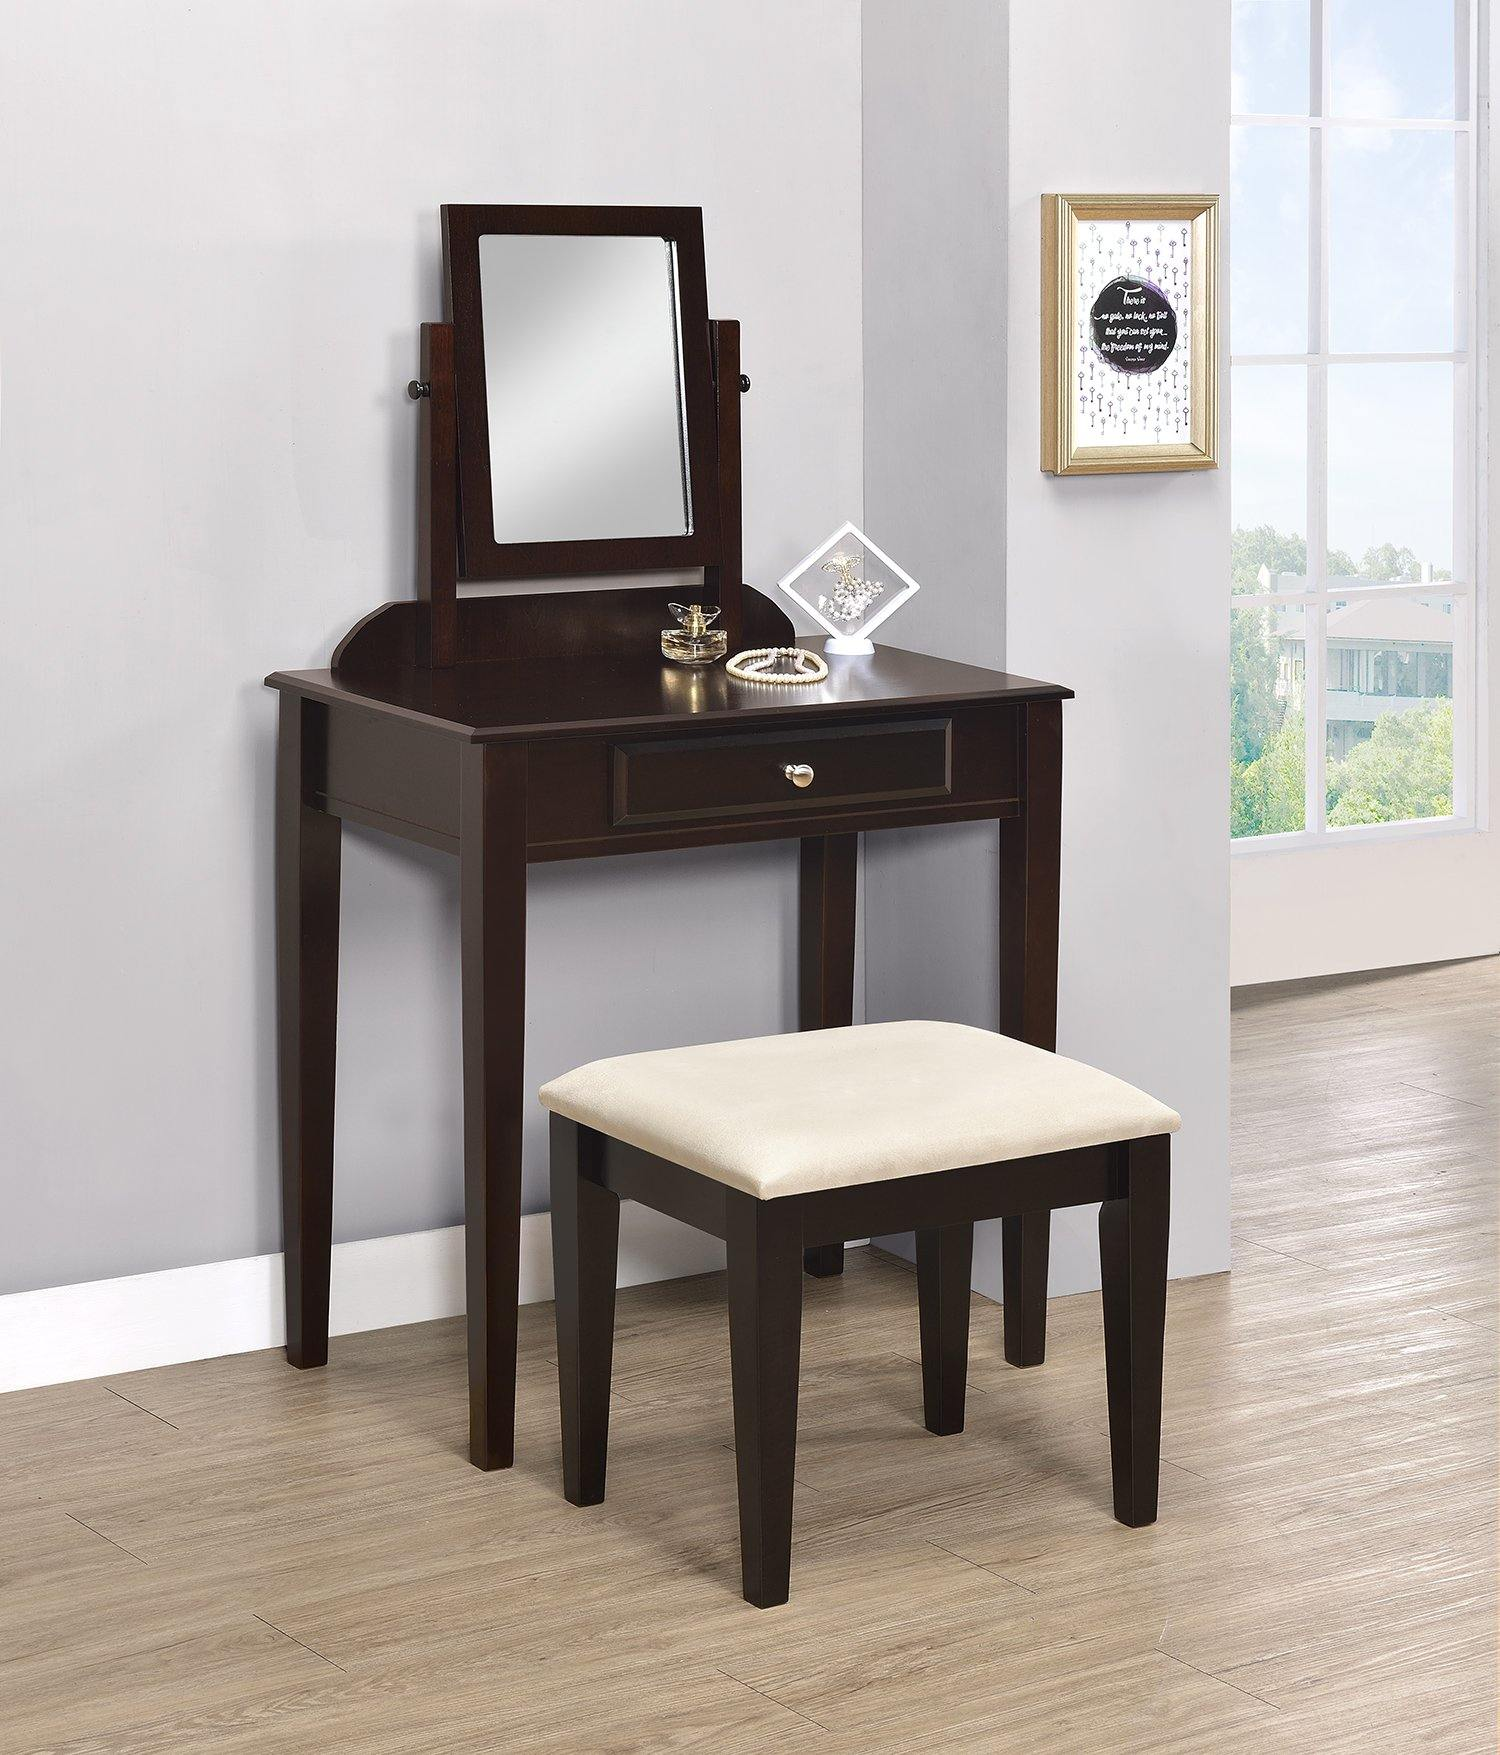 Transitional espresso vanity and stool 300079 Vanity1 By coaster - sofafair.com